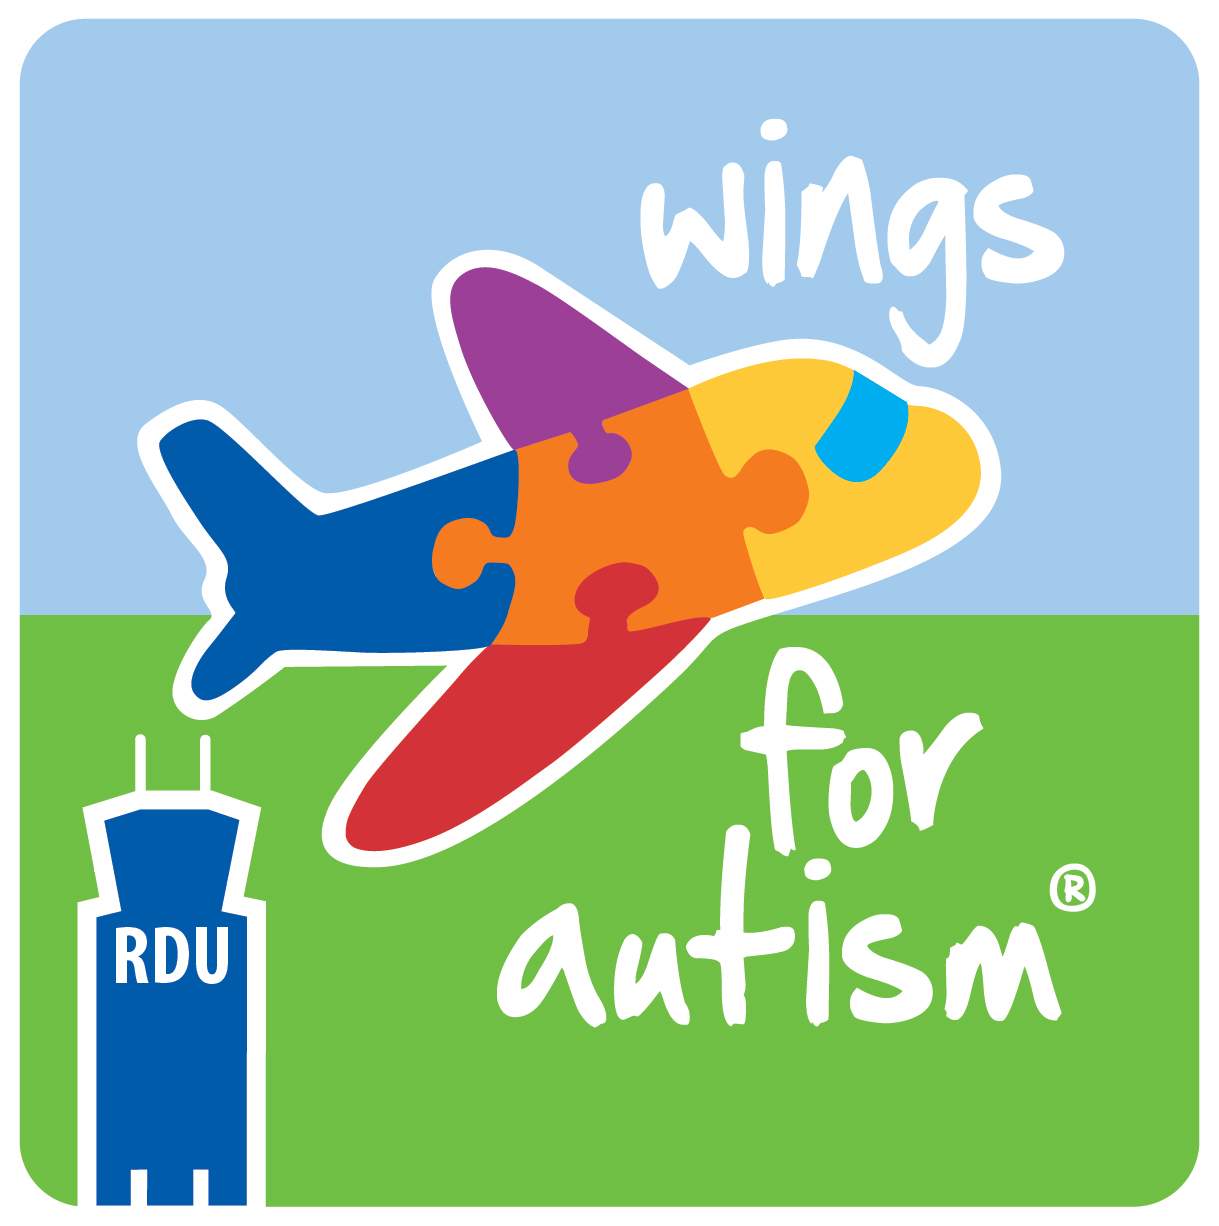 Wings_for_Autism_(Color)_RDU.jpg